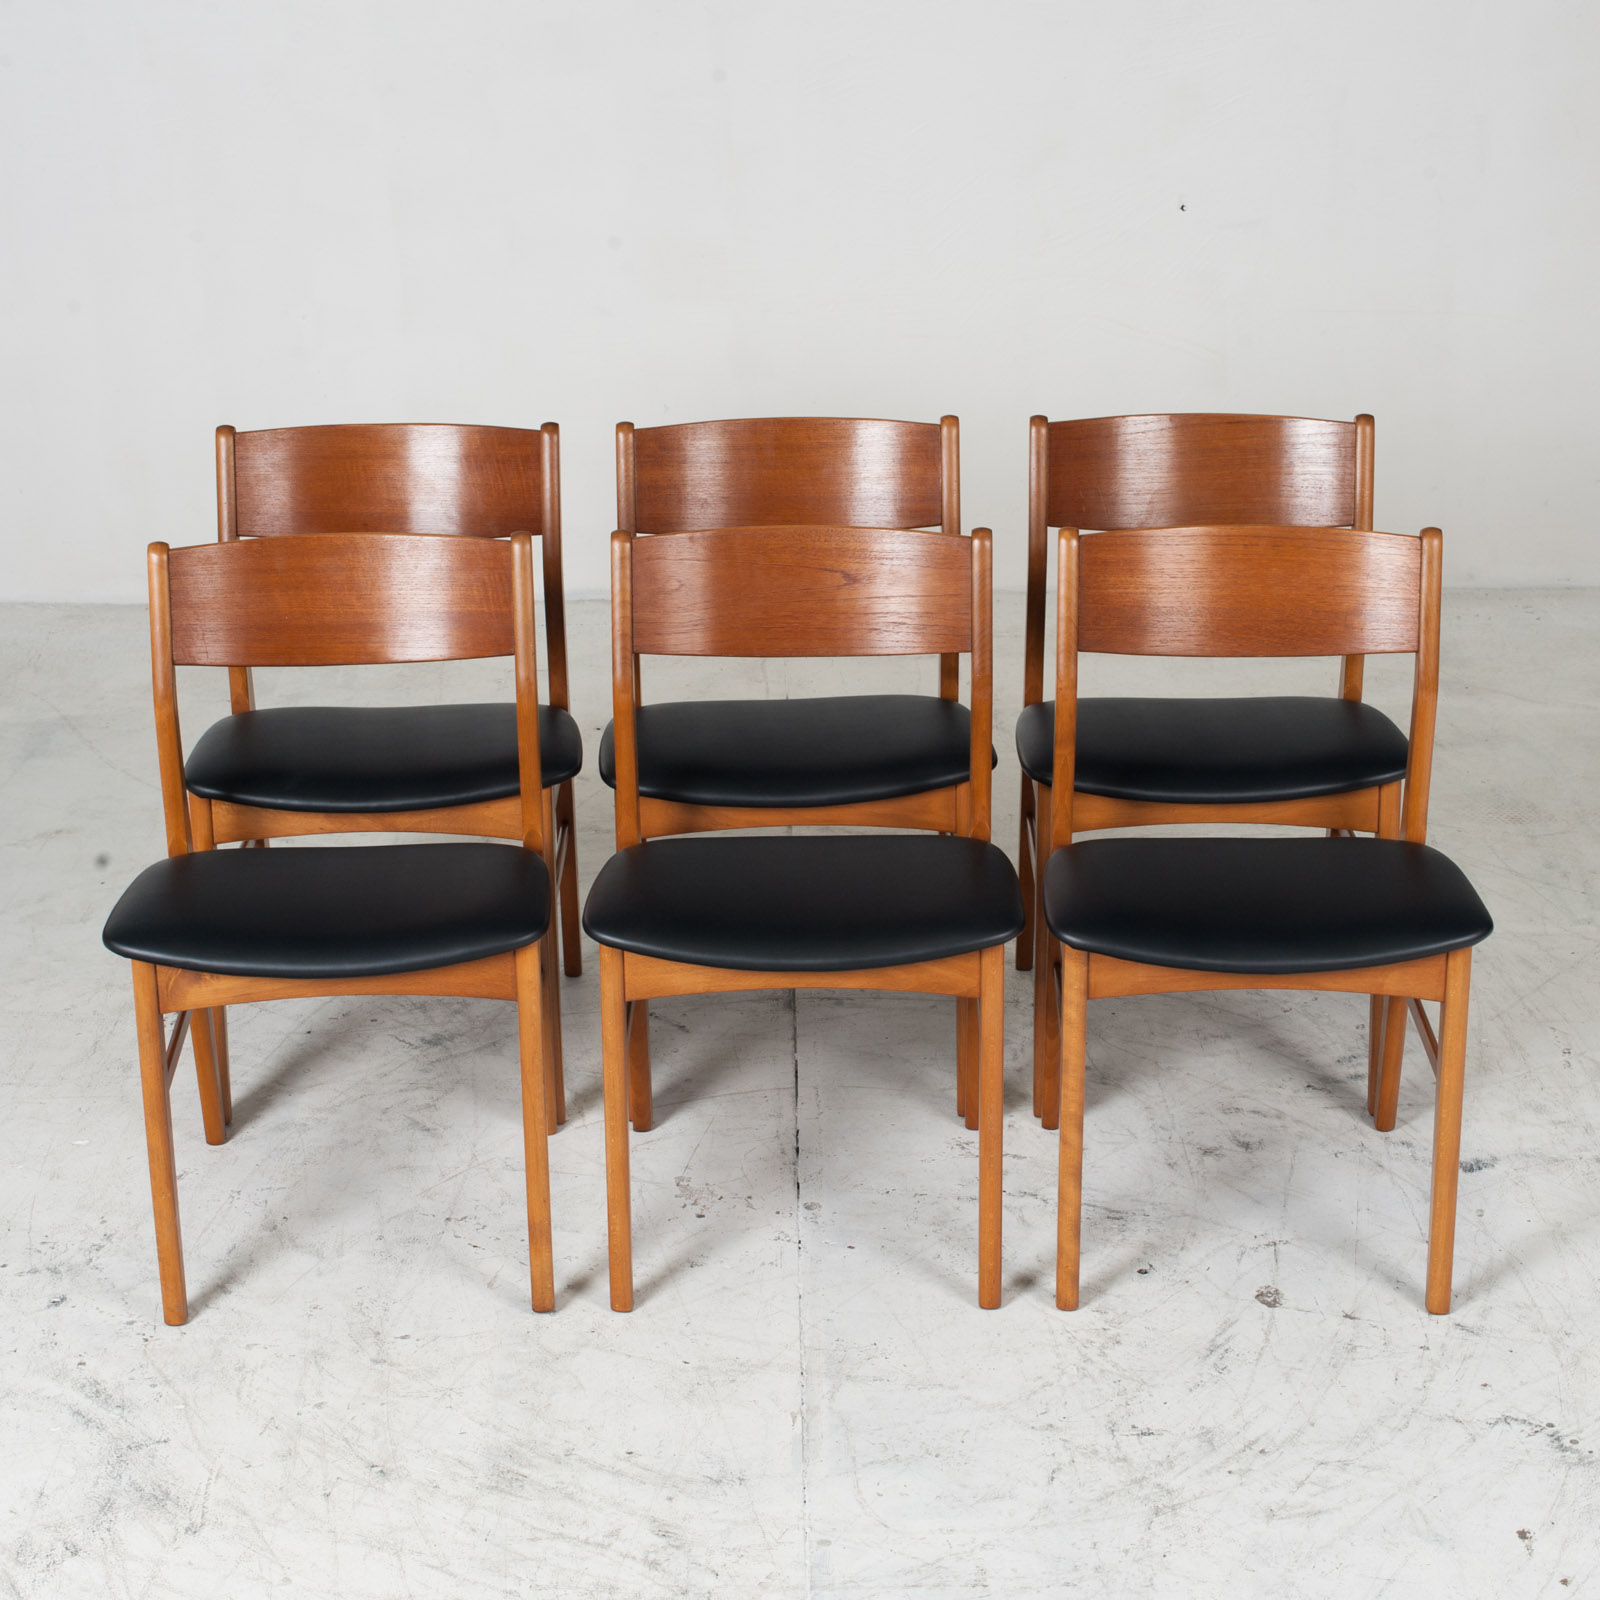 Set 6 Dining Chairs In The Style Of Erik Buch In Teak 1960s Denmark 013